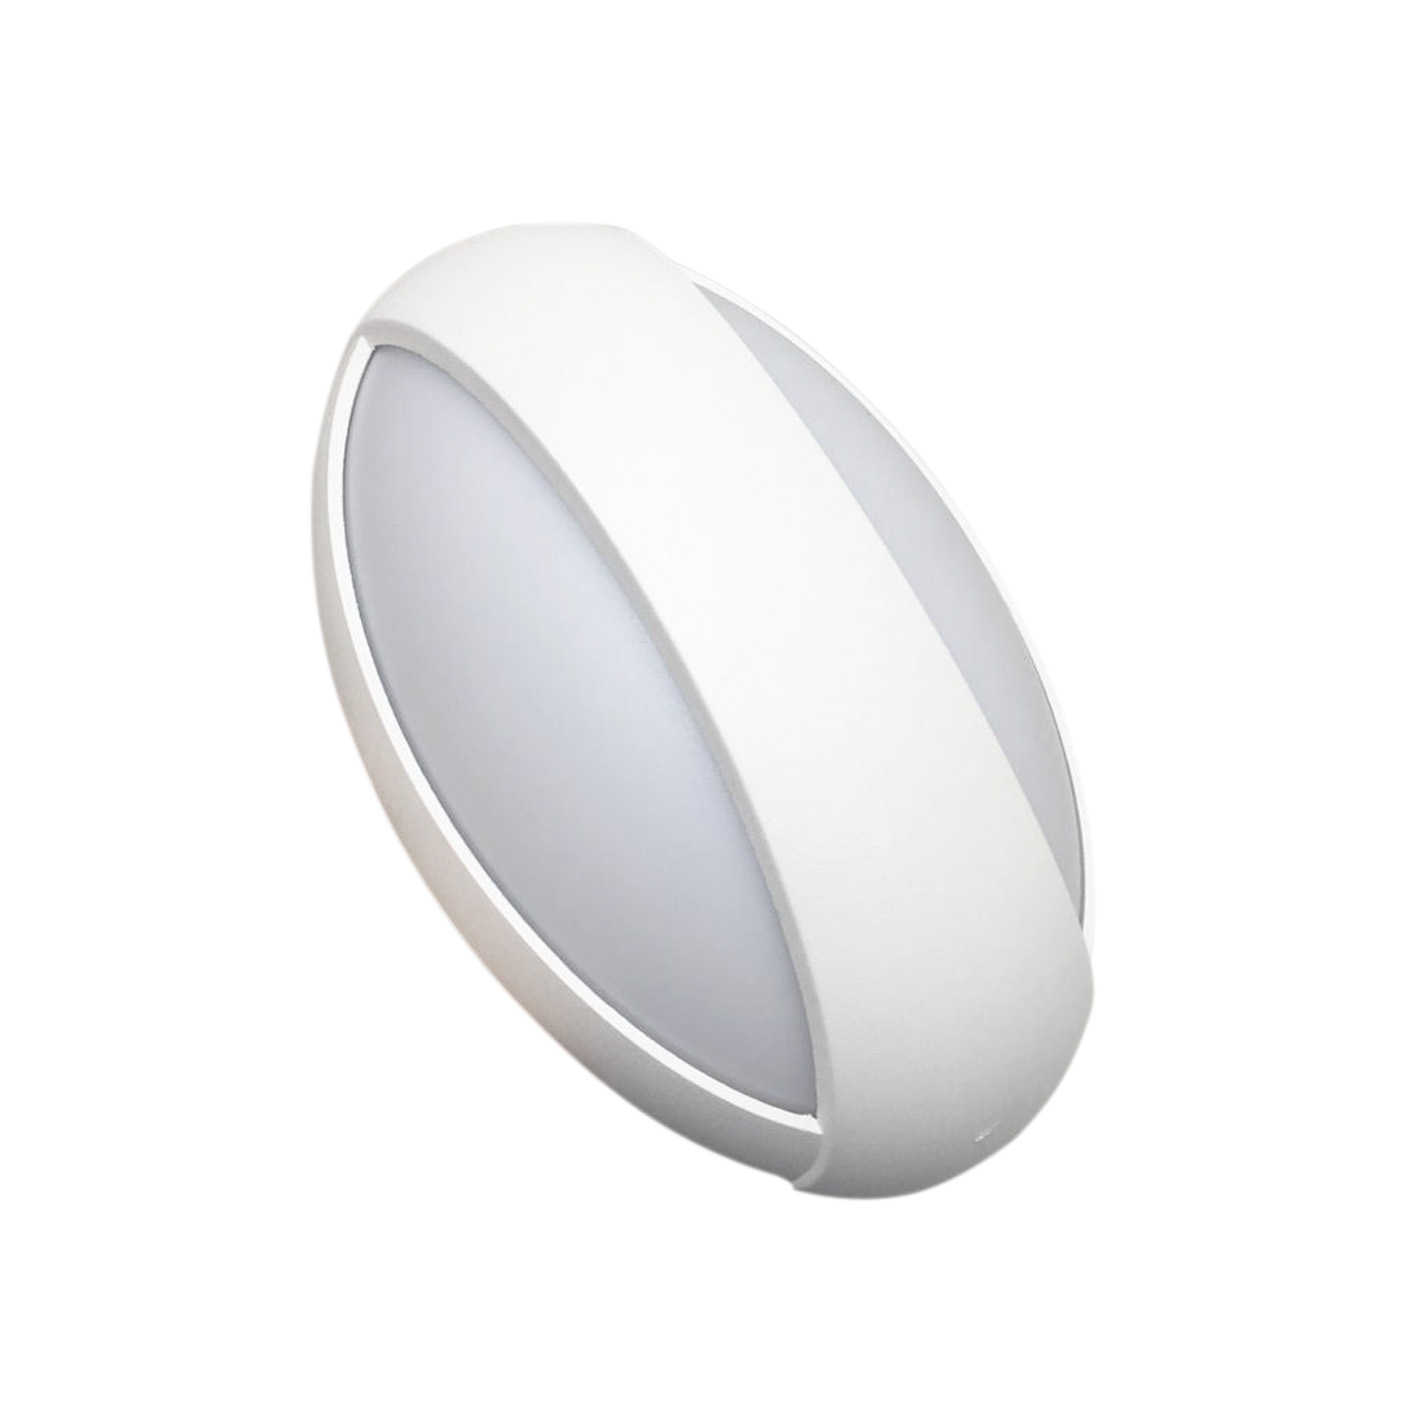 LED lamp 12w wall luminaire the ellipse to the interior B77-12W